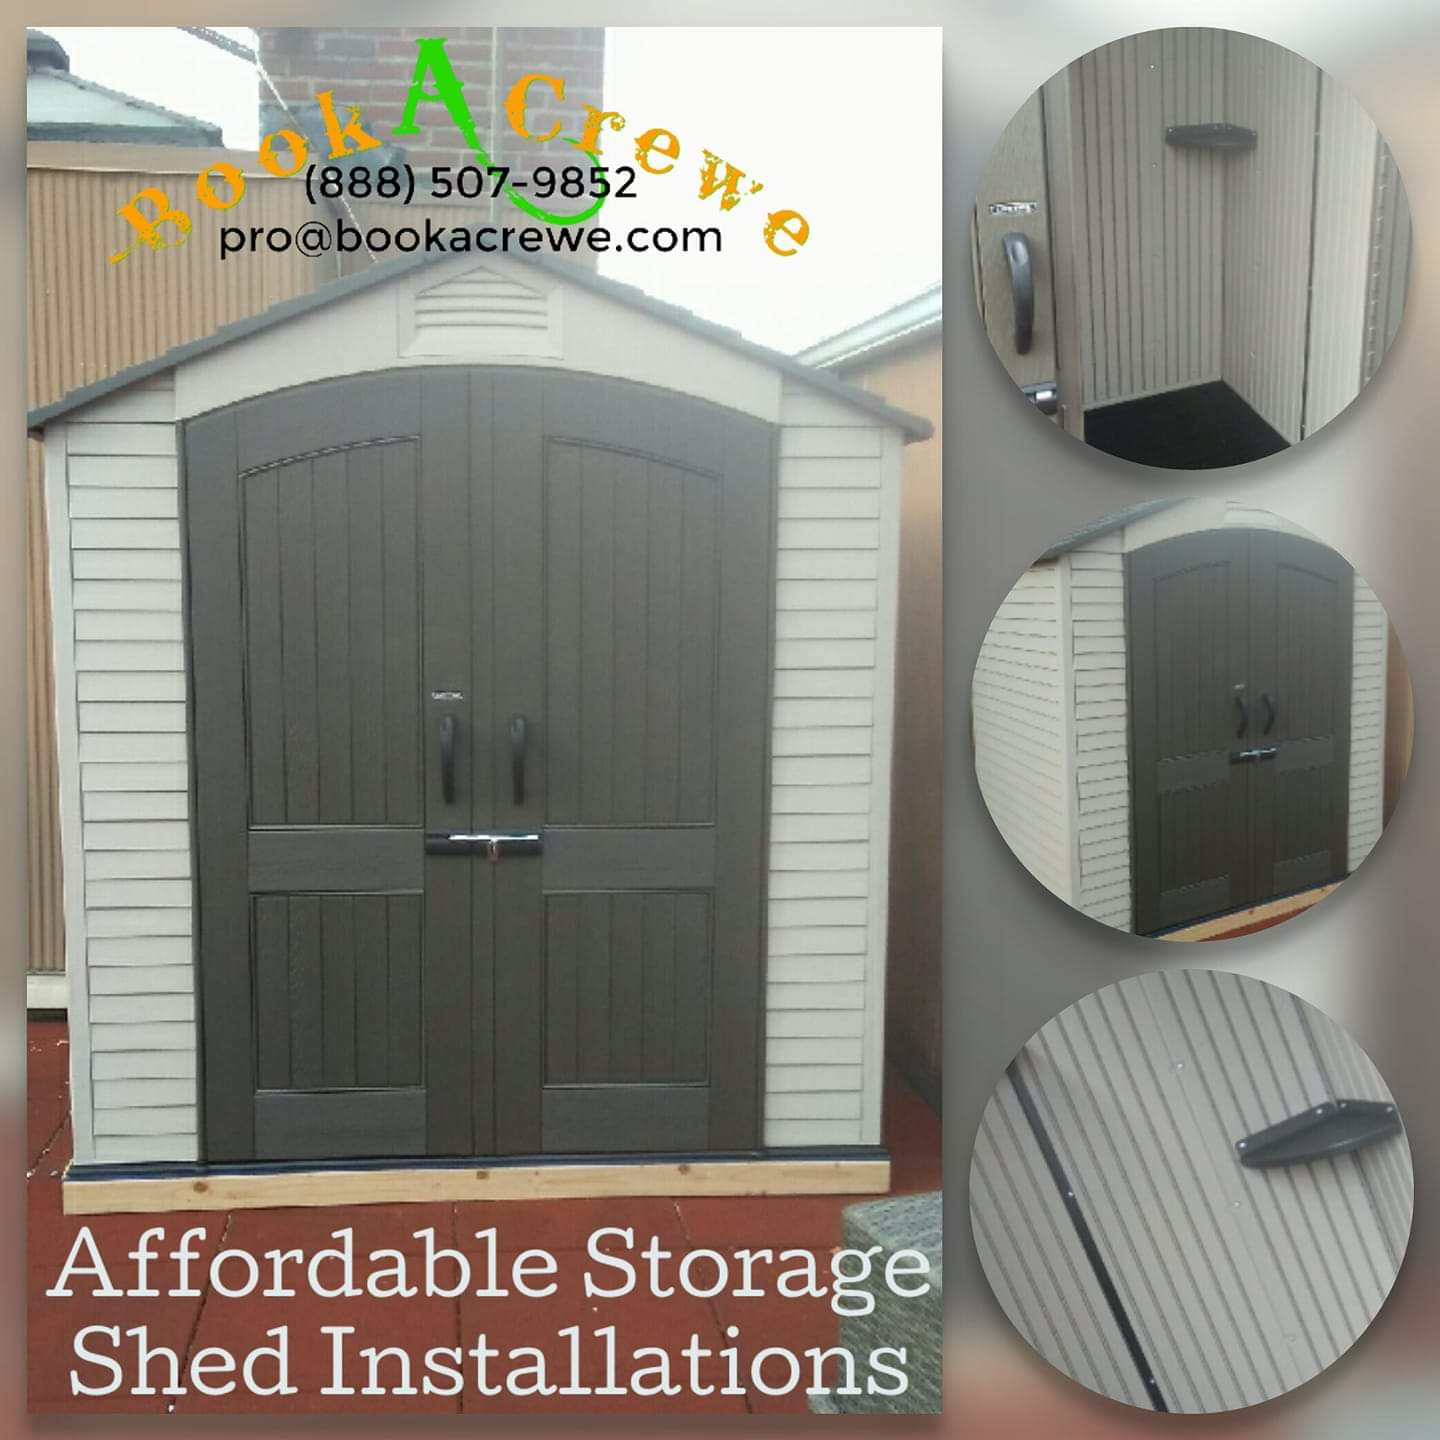 Home & Office Improvement - Shed Installation